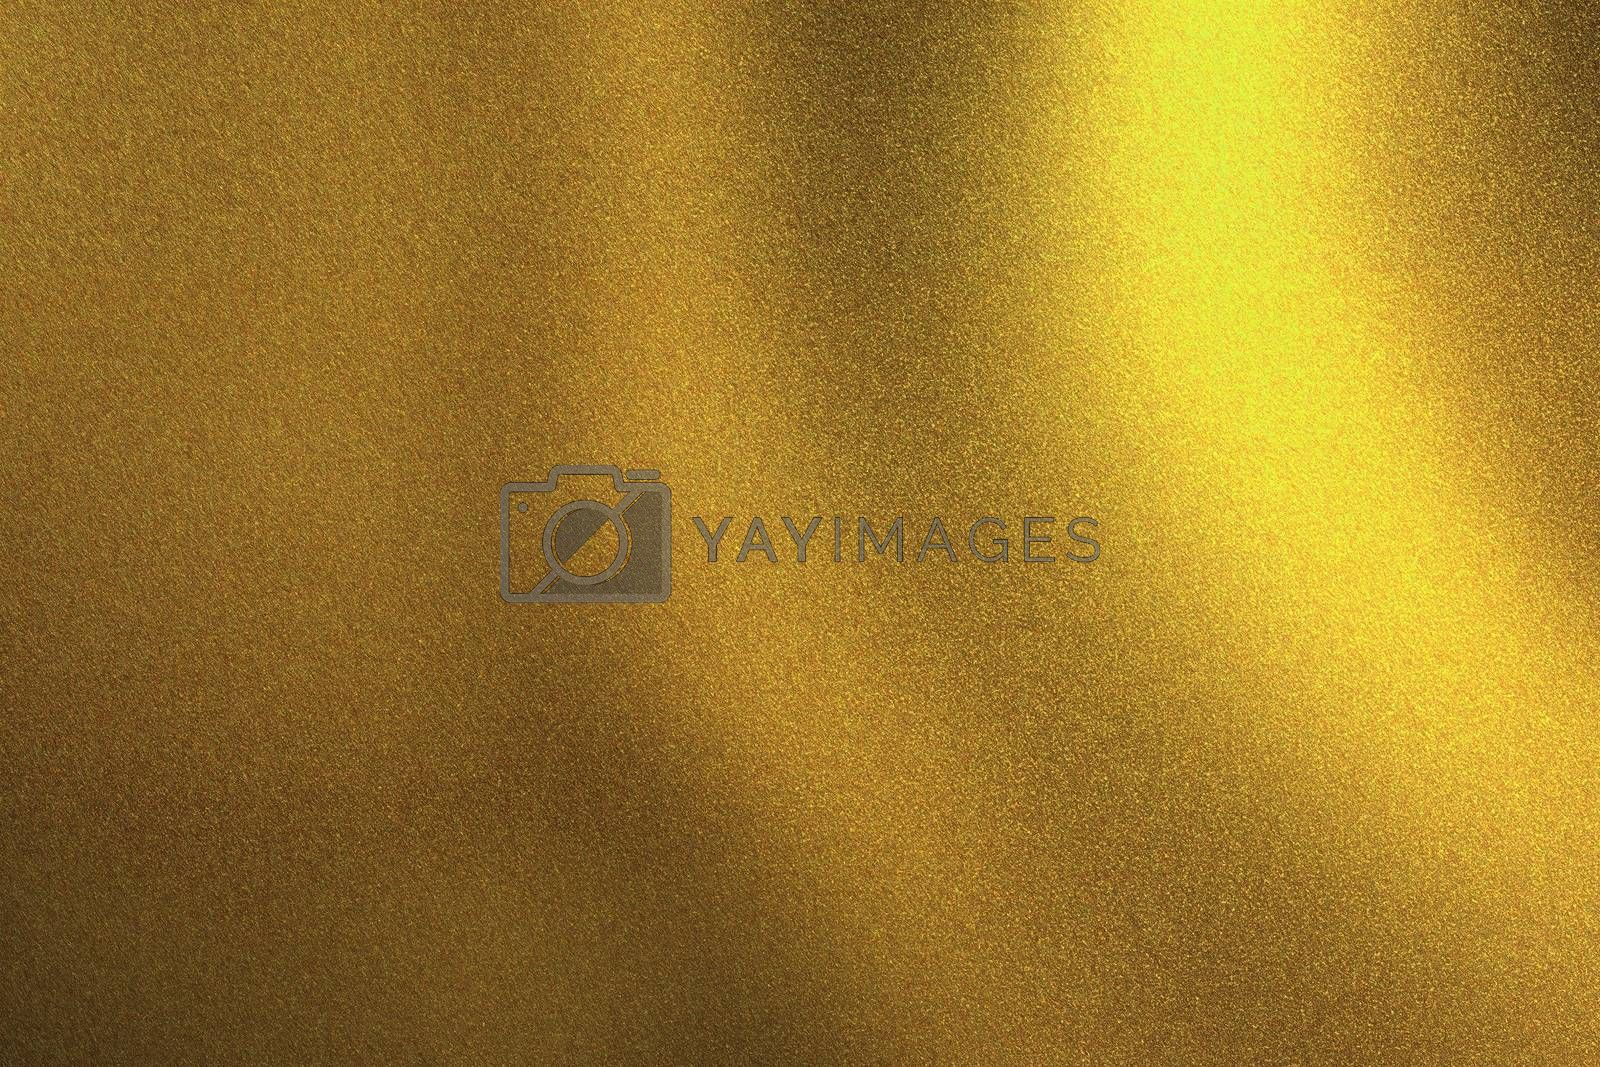 Light shining on golden metallic wall in dark room, abstract texture background by mouu007